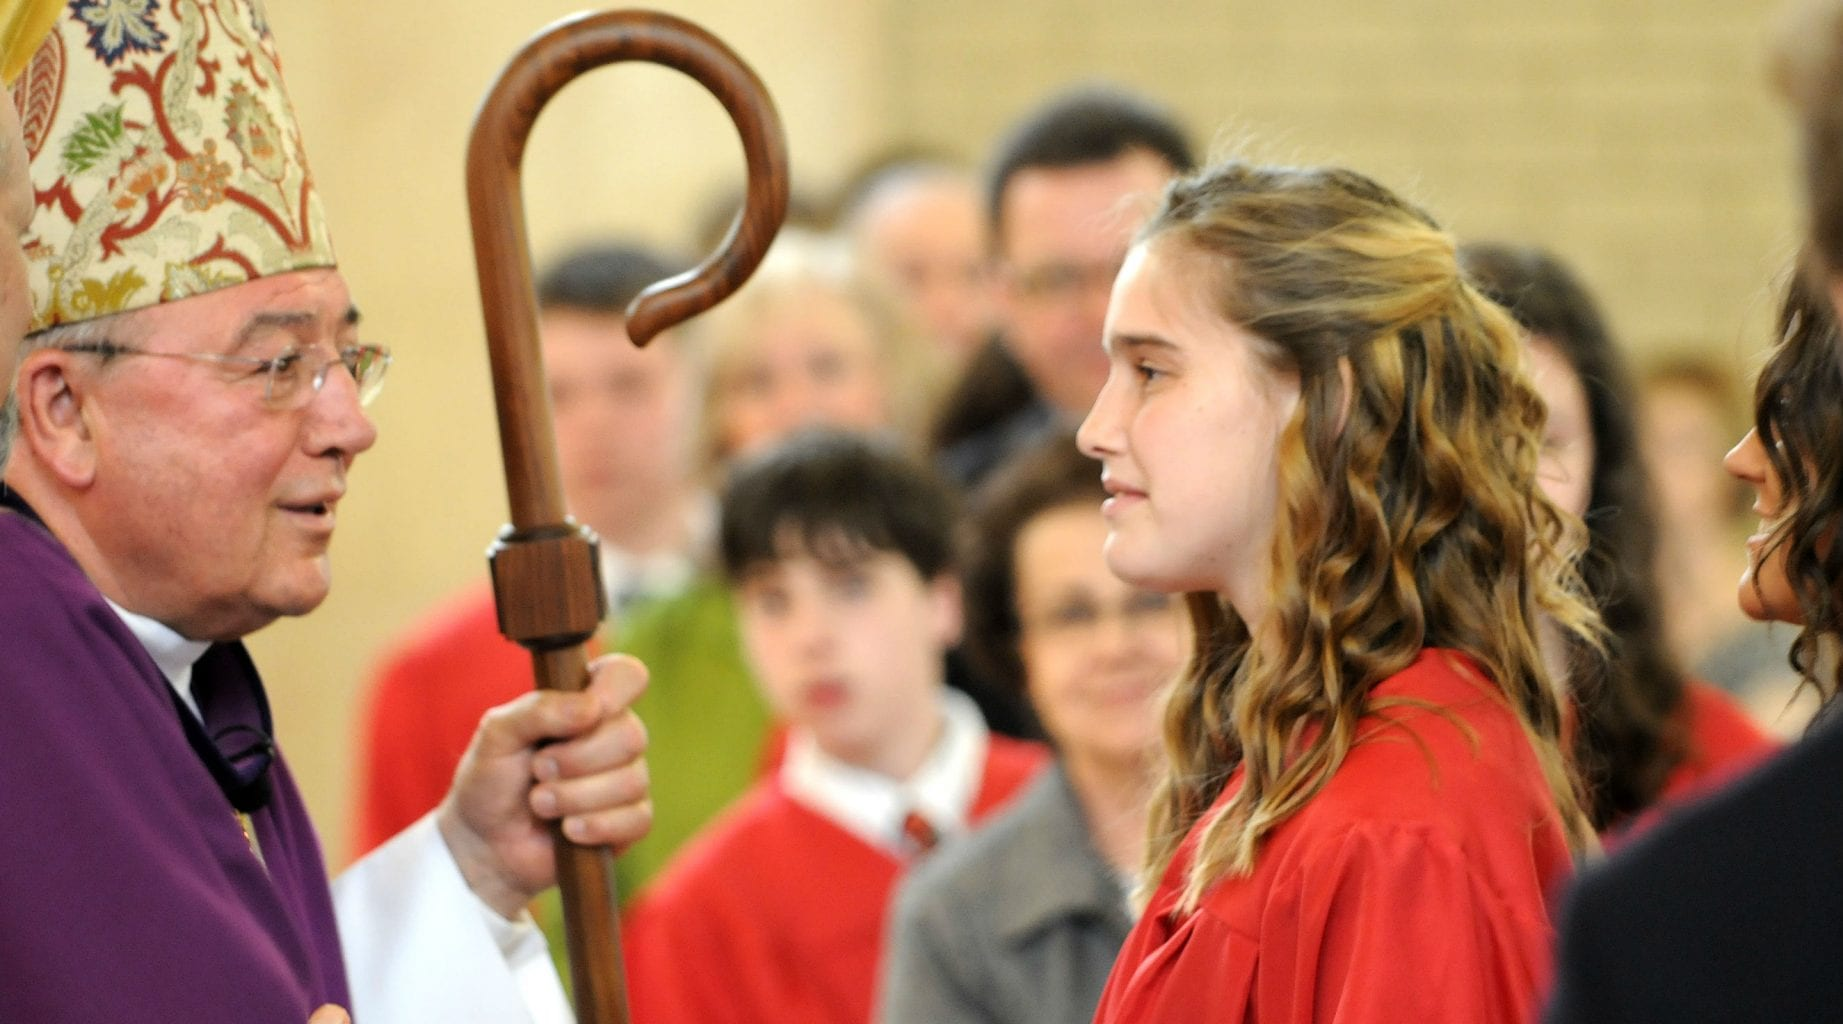 Sacrament of Confirmation — Meaning and Biblical Basis